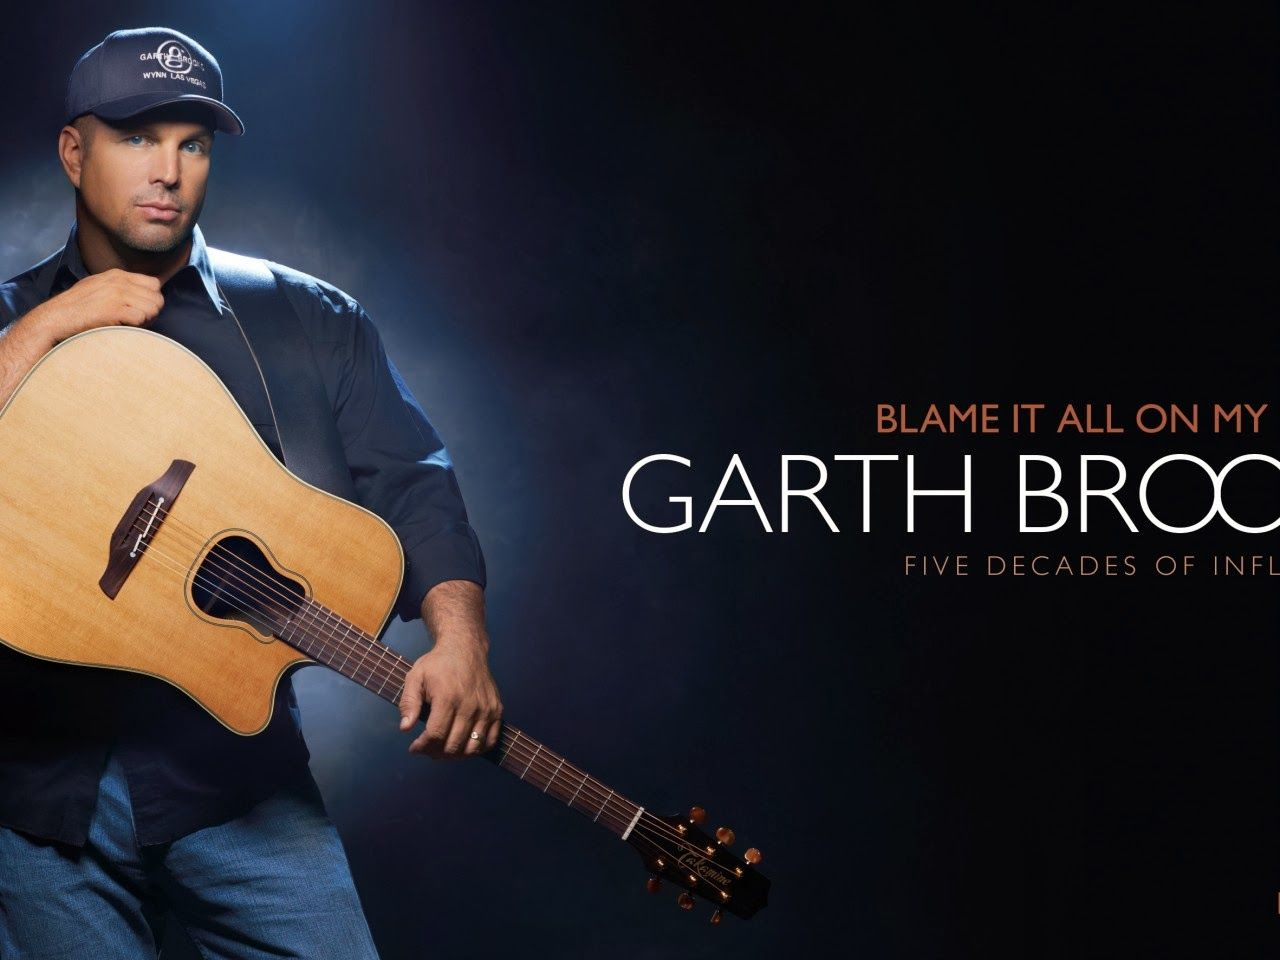 garth brooks - gunslingergarth brooks friends in low places, garth brooks the dance, garth brooks youtube, garth brooks - the thunder rolls, garth brooks if tomorrow never comes lyrics, garth brooks standing outside the fire, garth brooks trisha yearwood, garth brooks net worth, garth brooks river, garth brooks that summer, garth brooks wolves, garth brooks 2016, garth brooks gunslinger 2016, garth brooks - gunslinger, garth brooks singer, garth brooks friends in low places lyrics, garth brooks new york 1997, garth brooks standing outside the fire lyrics, garth brooks that summer download, garth brooks obama